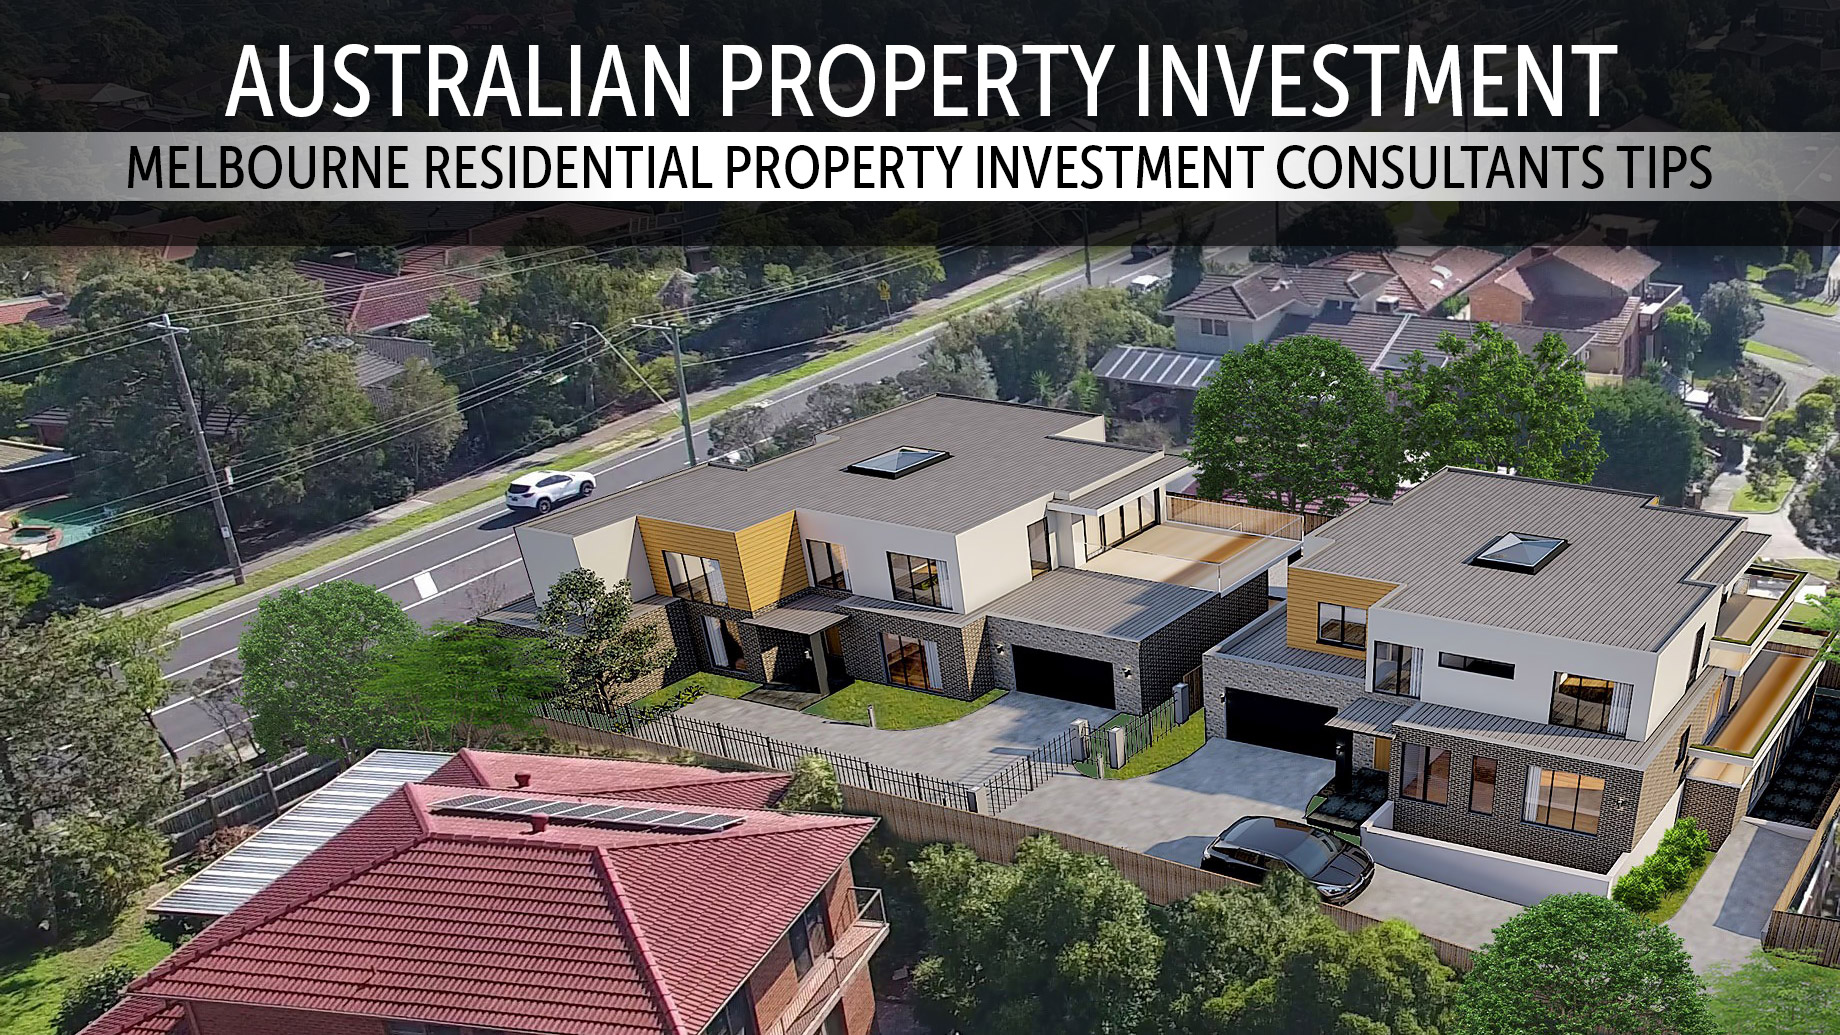 Australian Property Investment - Melbourne Residential Property Investment Consultants Tips